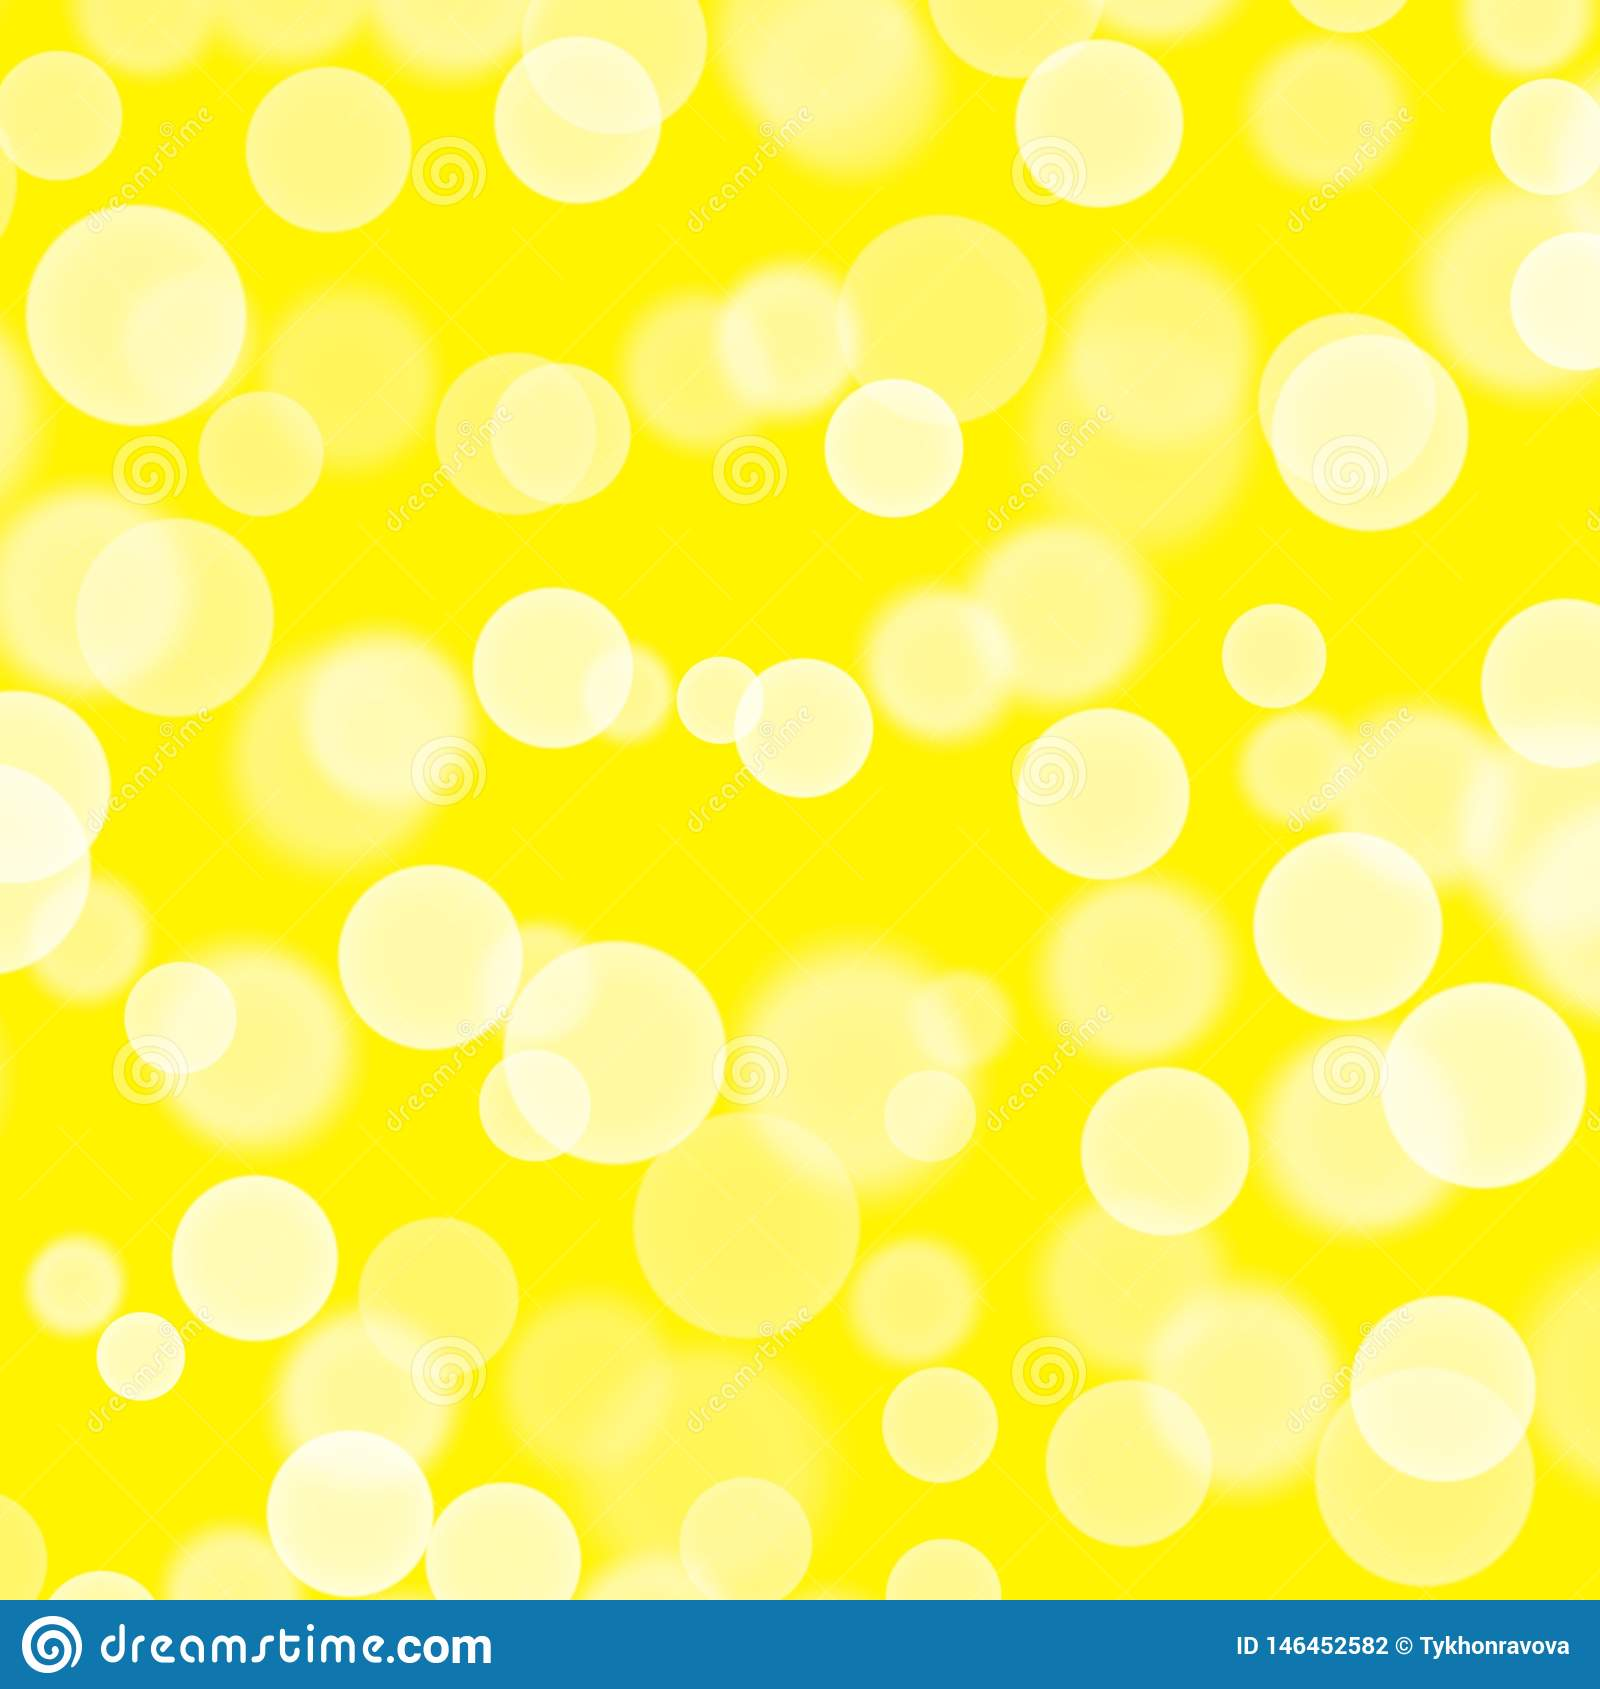 Abstract background. Hand drawn texture card. Splashes bubbles gum. Design for backgrounds, wallpapers, covers packaging Yellow